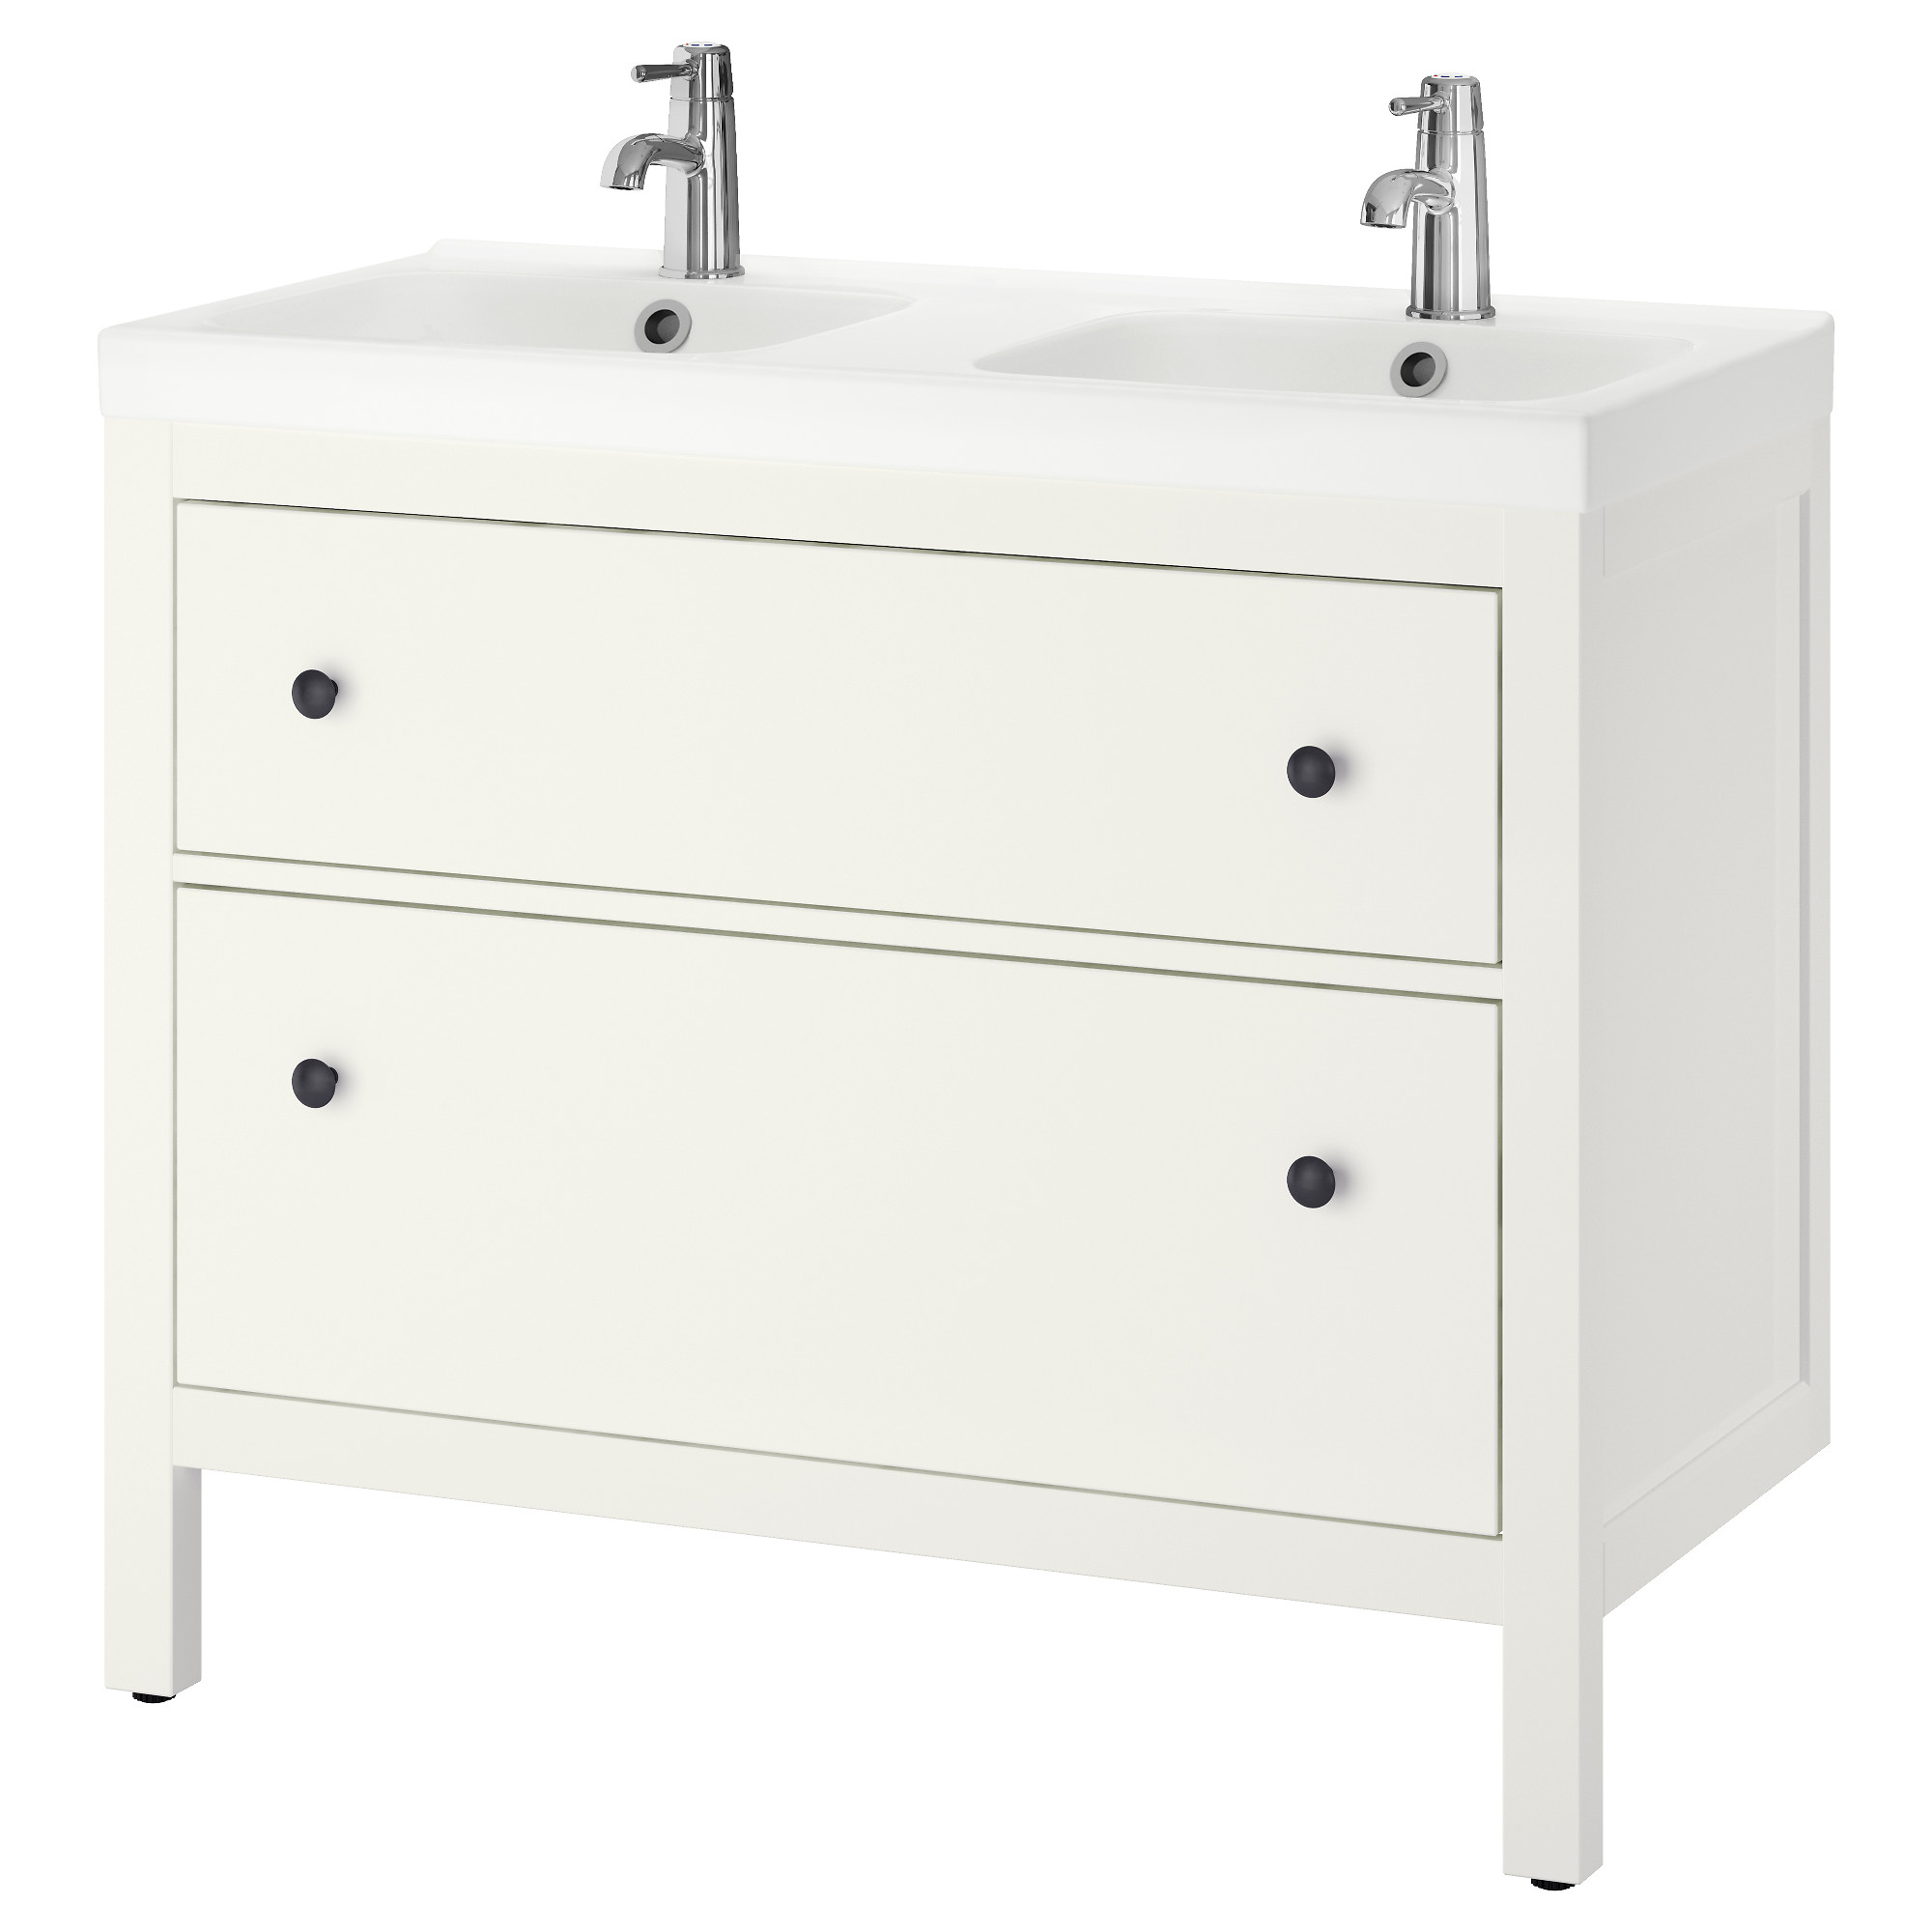 Hemnes Odensvik Sink Cabinet With 2 Drawers White Width 40 1 2